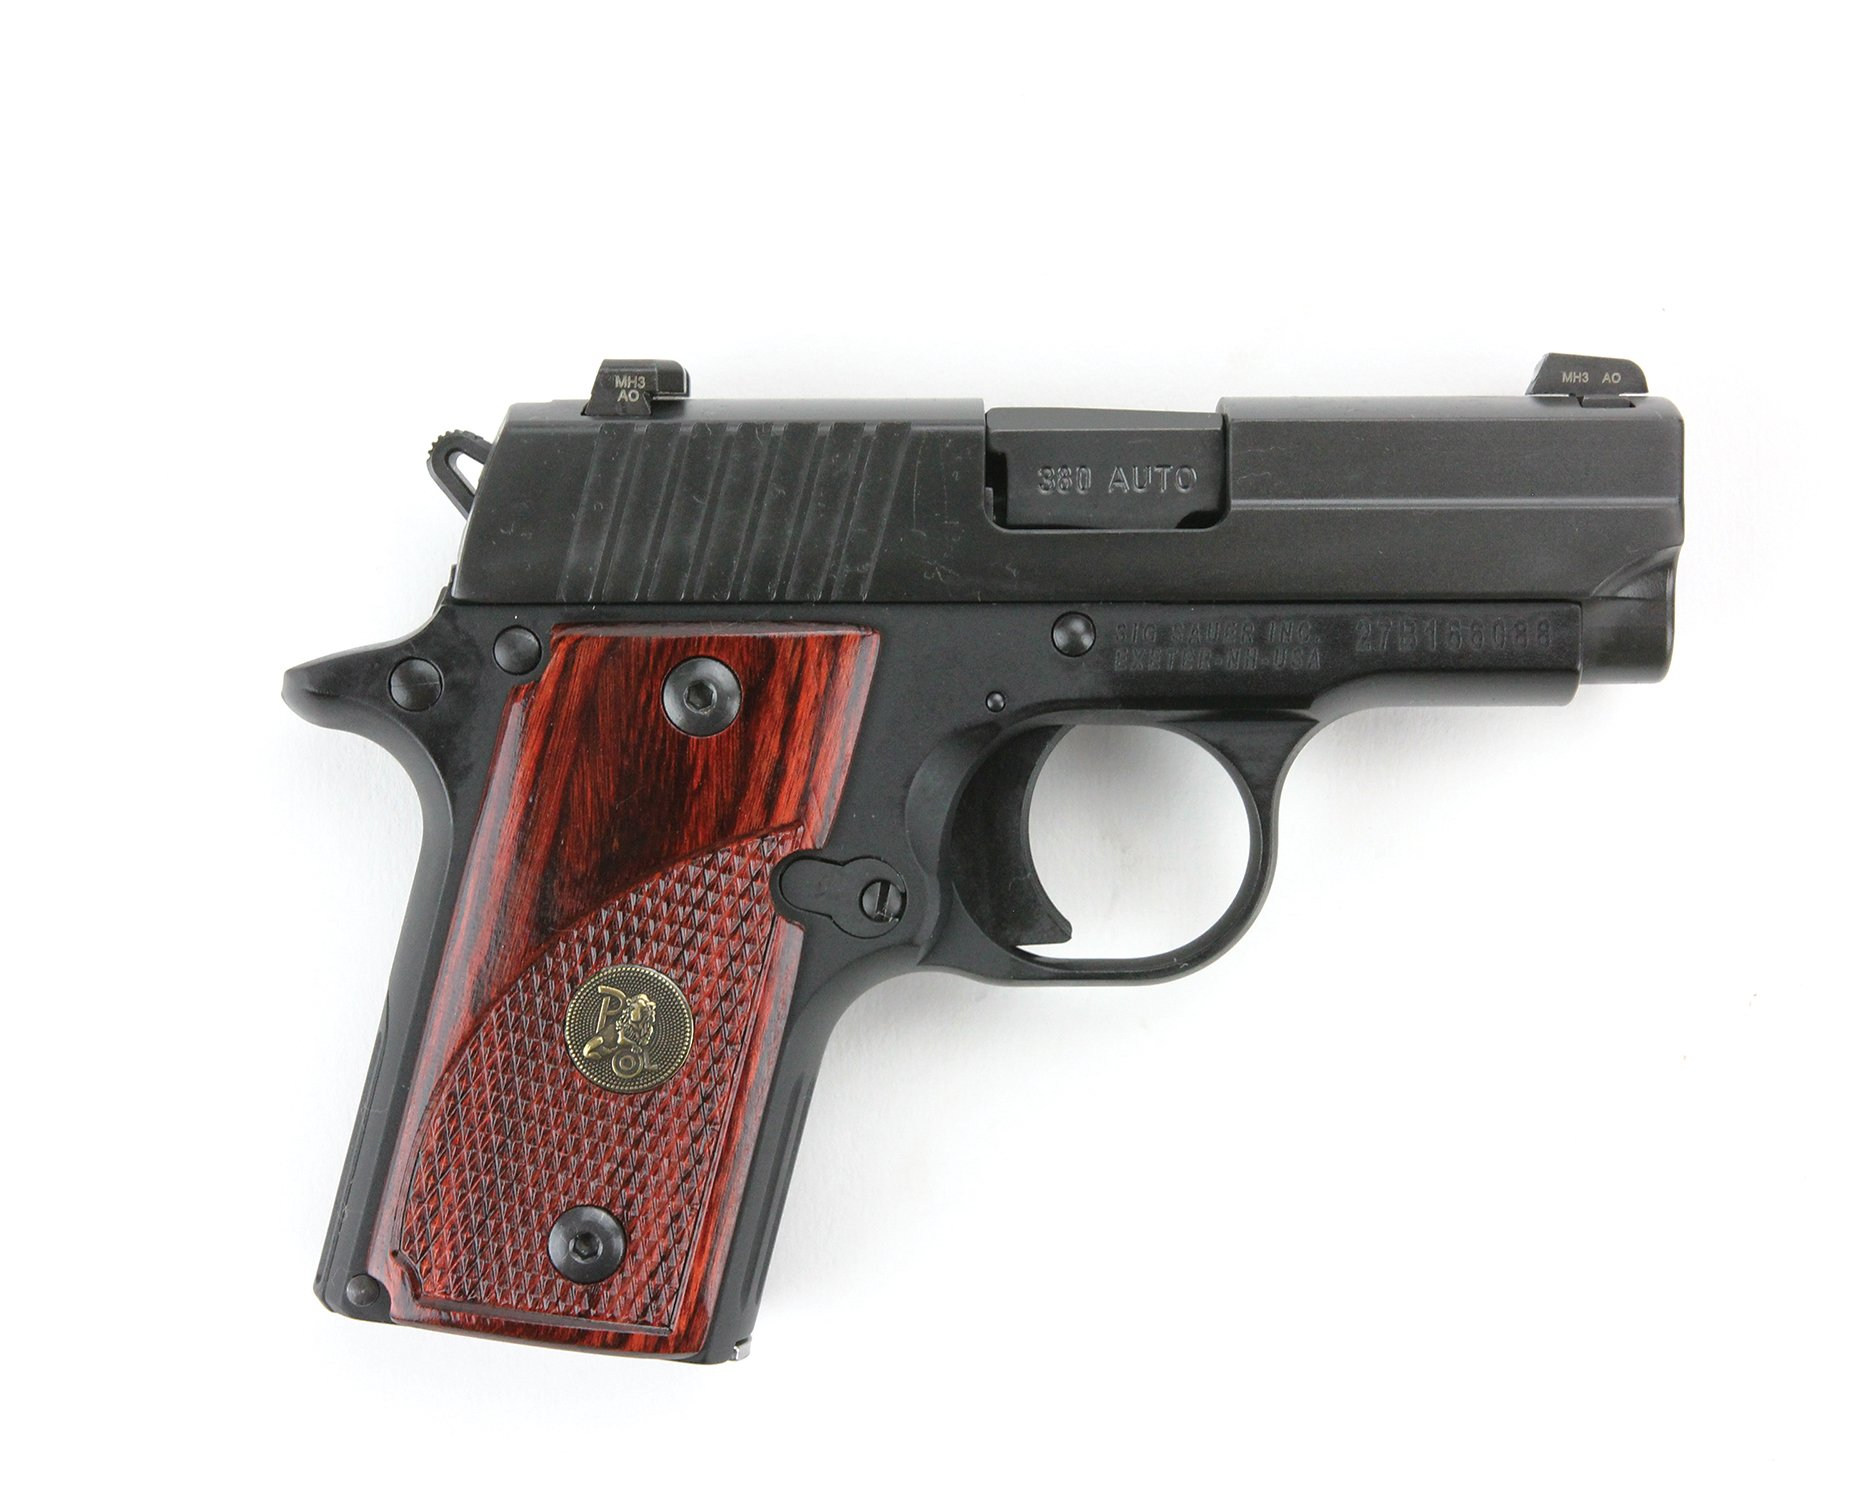 Pachmayr 63140 Sig P238 Rosewood